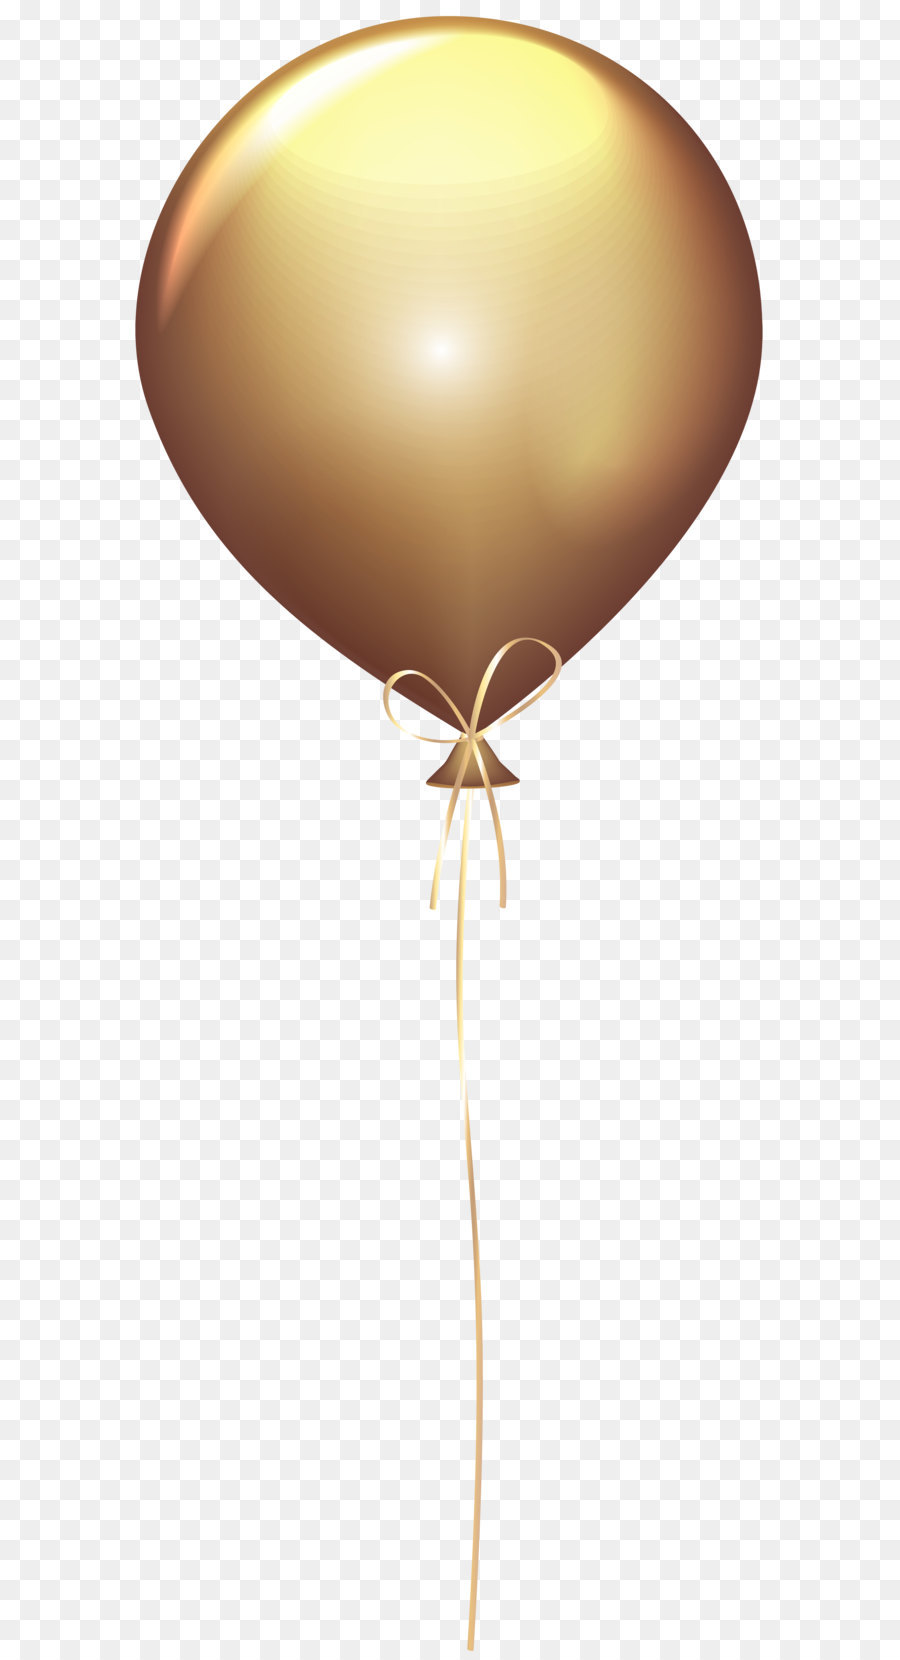 Gold balloons clipart 2 » Clipart Station.